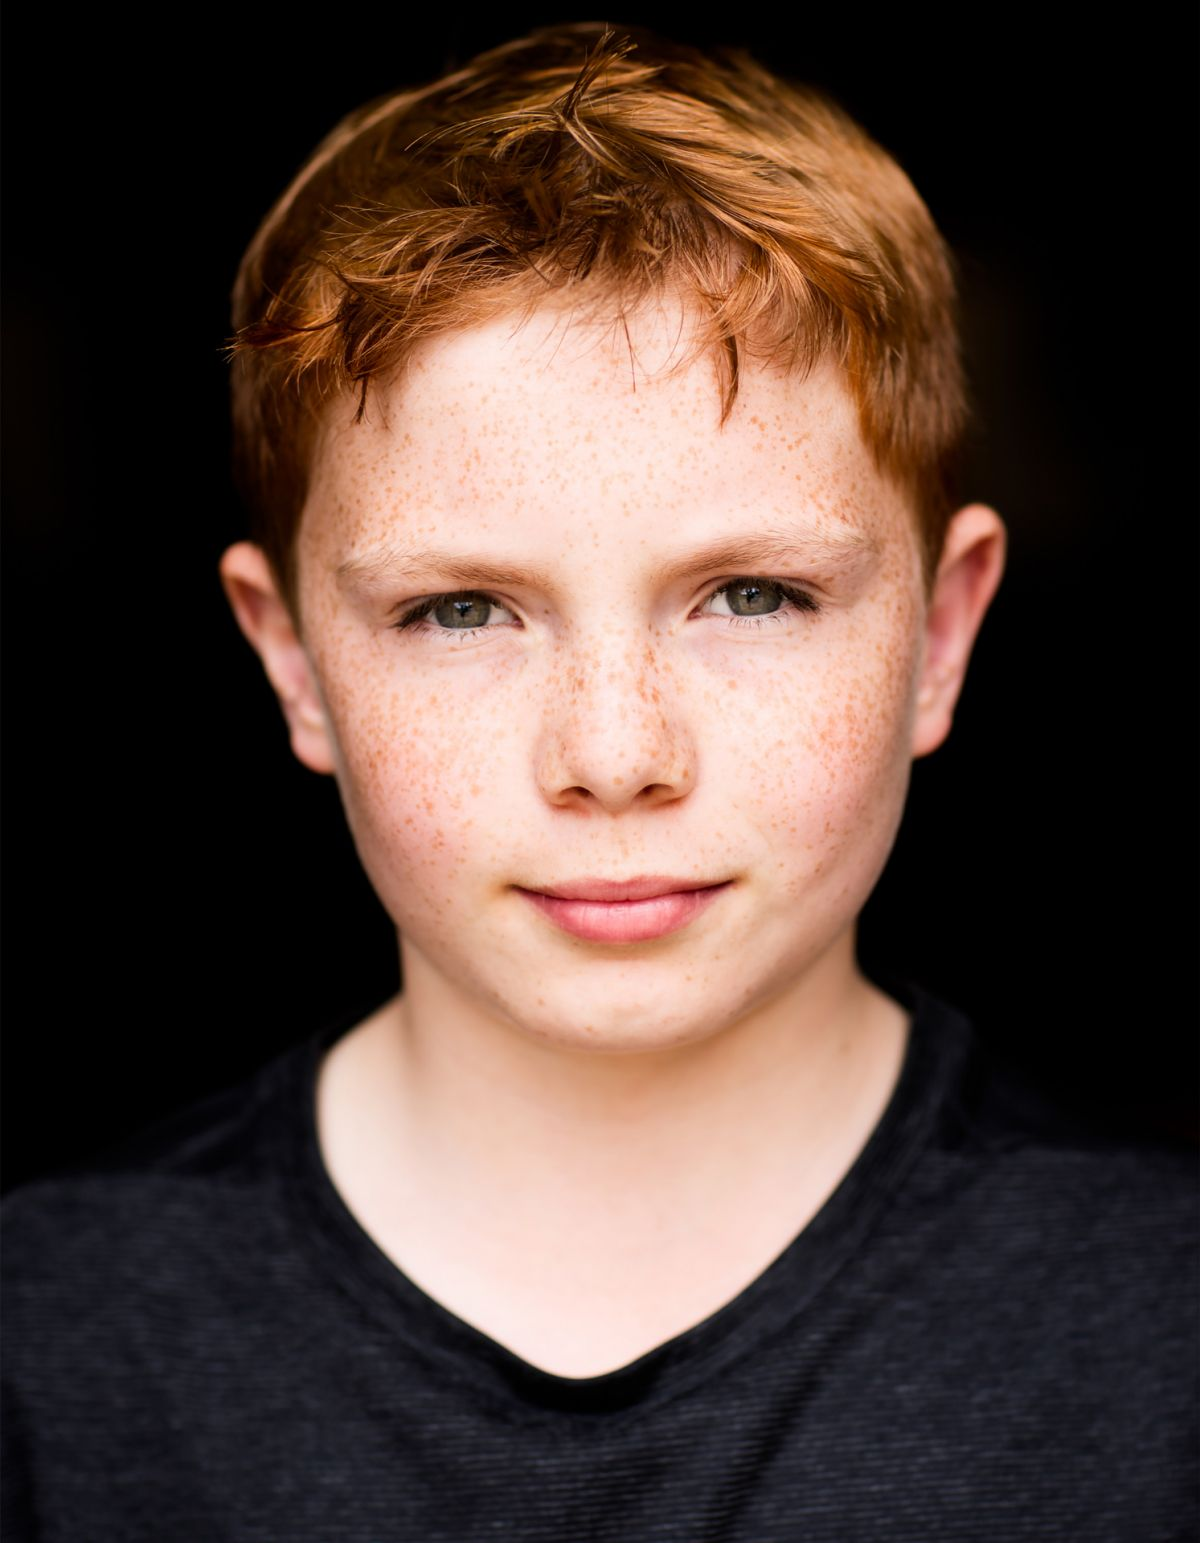 Young boys head shot photo with freckles, ginger hair and black background